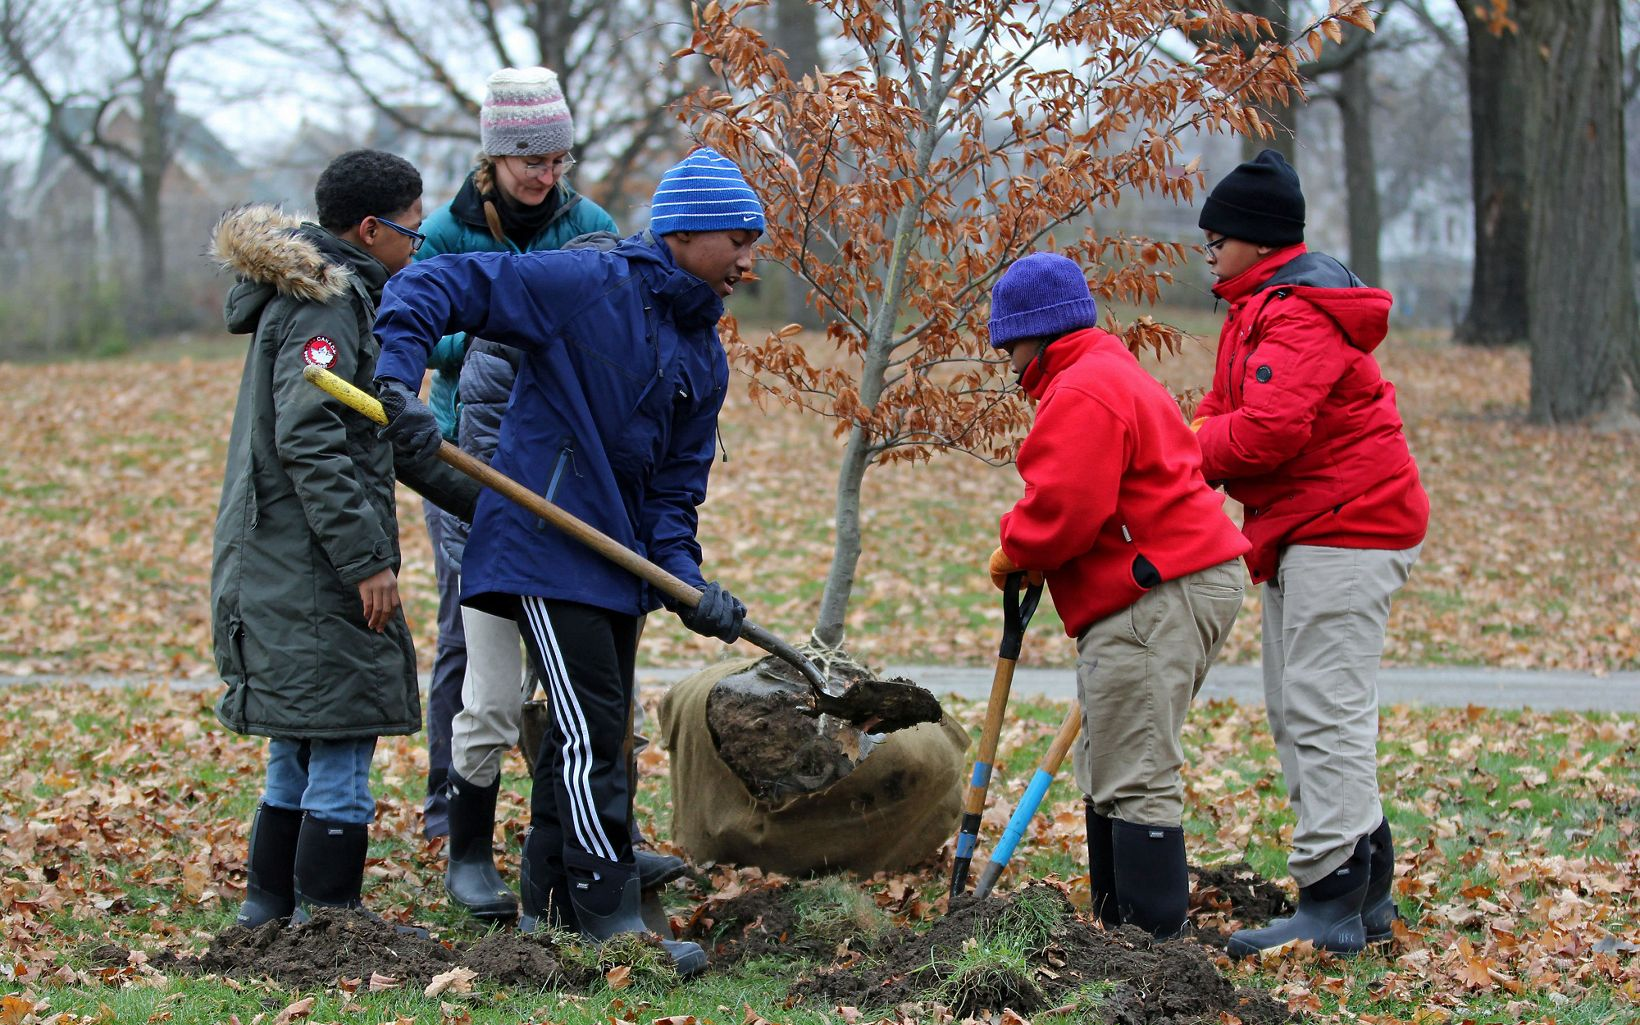 Students plant trees with the Urban Ecology Center in Washington Park.